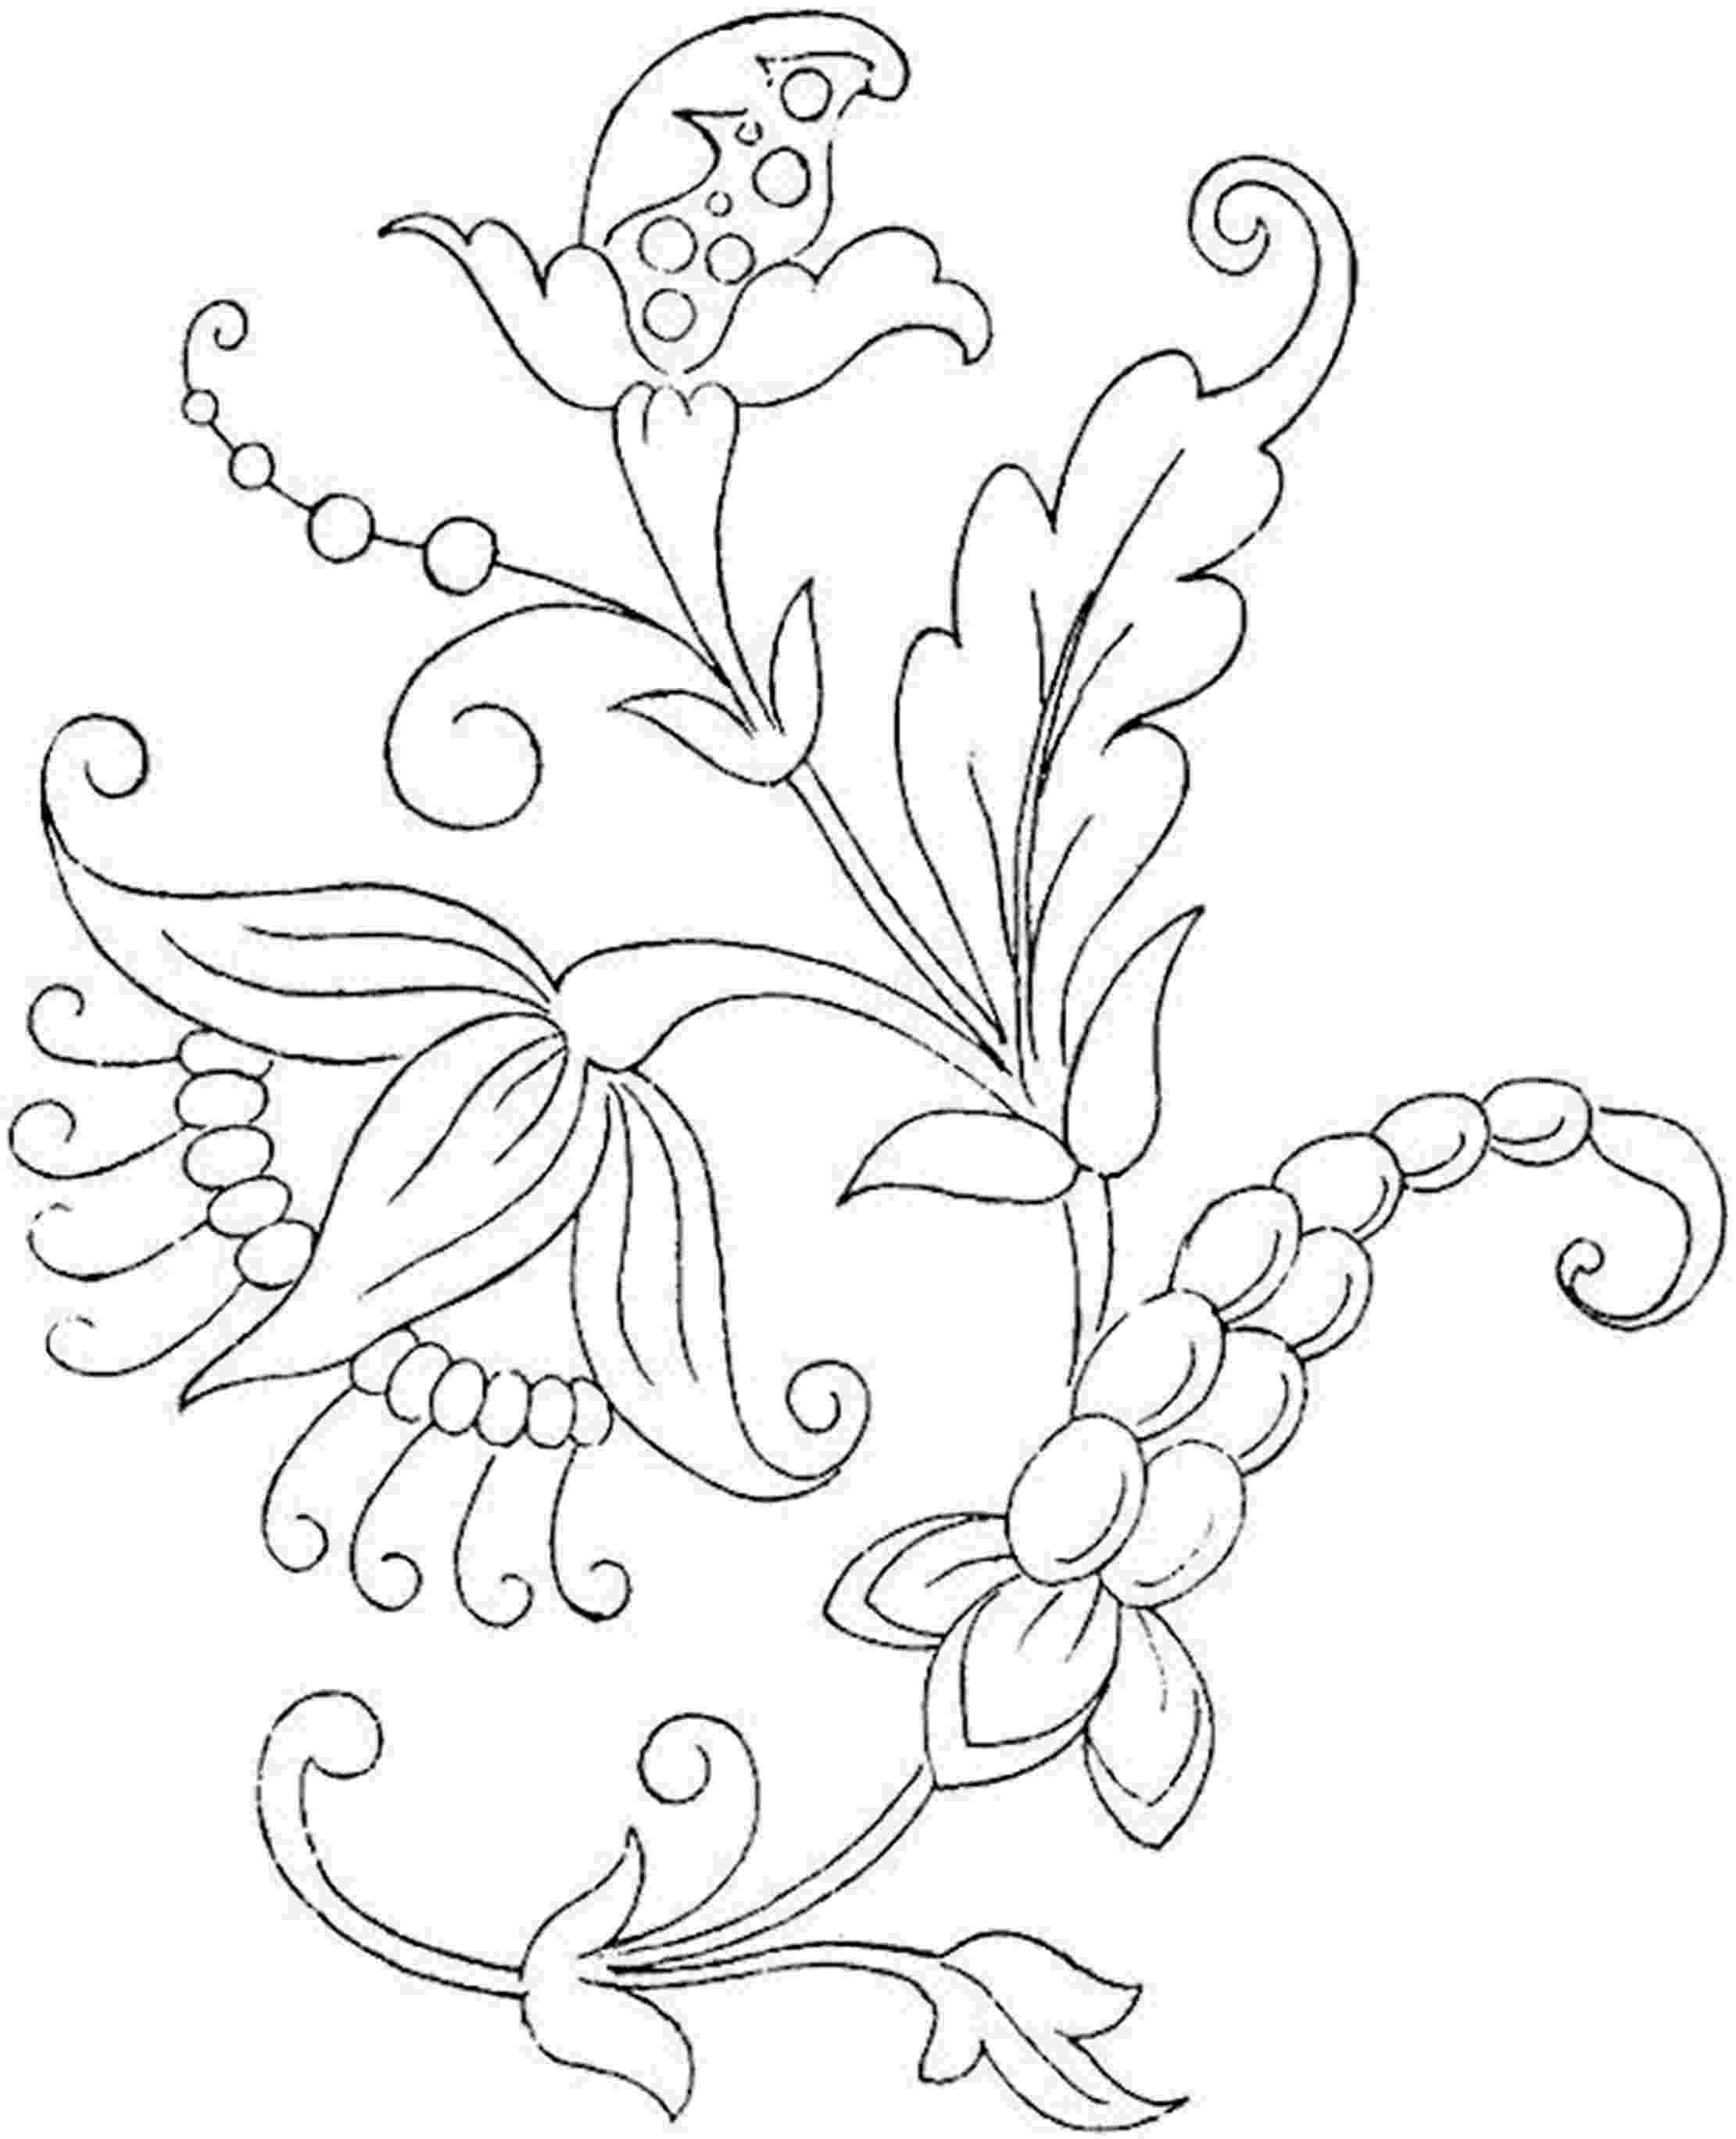 pictures of flowers to color free printables free printable bursting blossoms flower coloring page free of pictures to color printables flowers